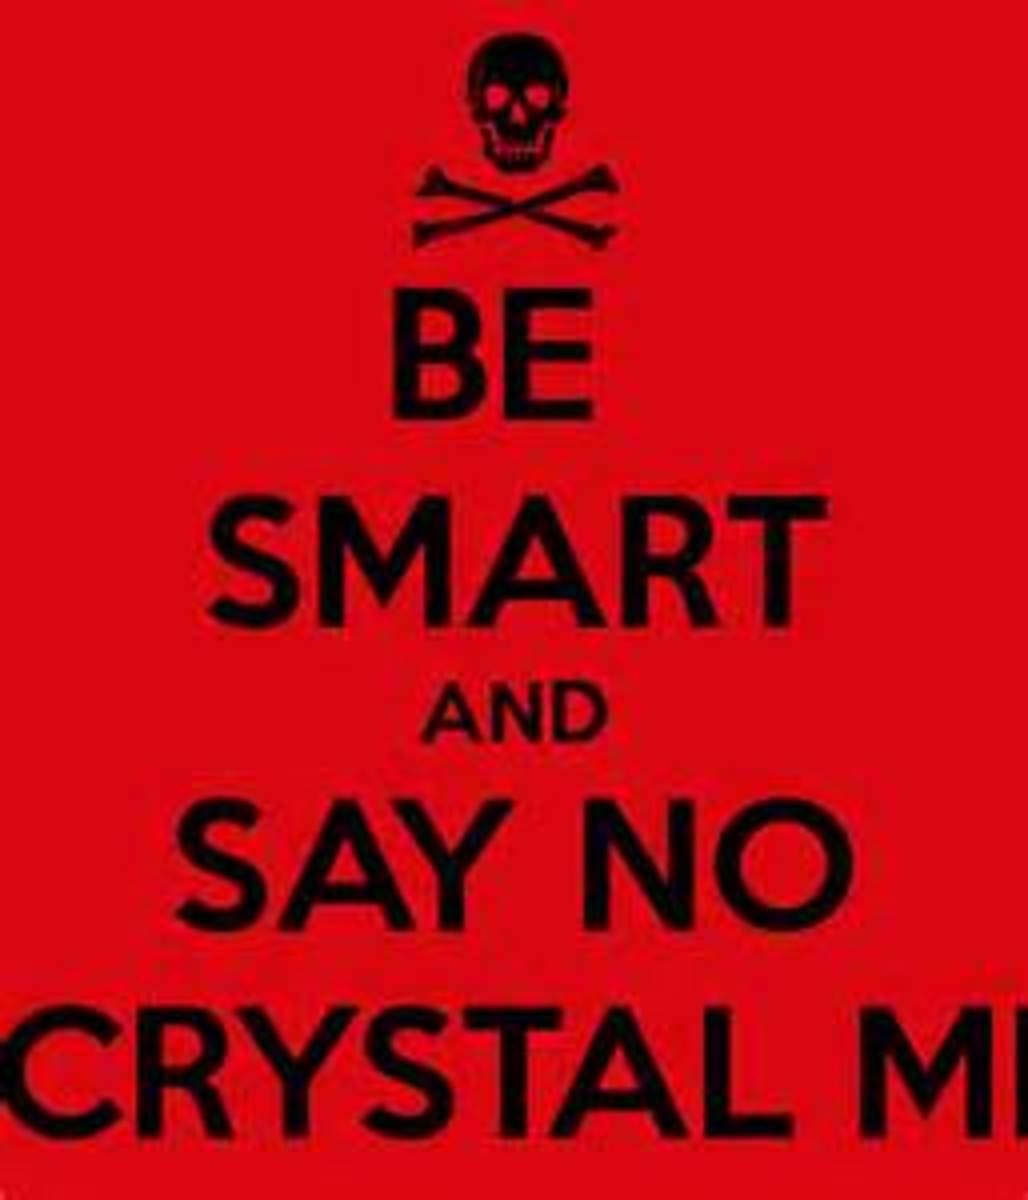 i-am-thinking-about-trying-crystal-meth-here-are-some-past-experiences-with-crystal-meth